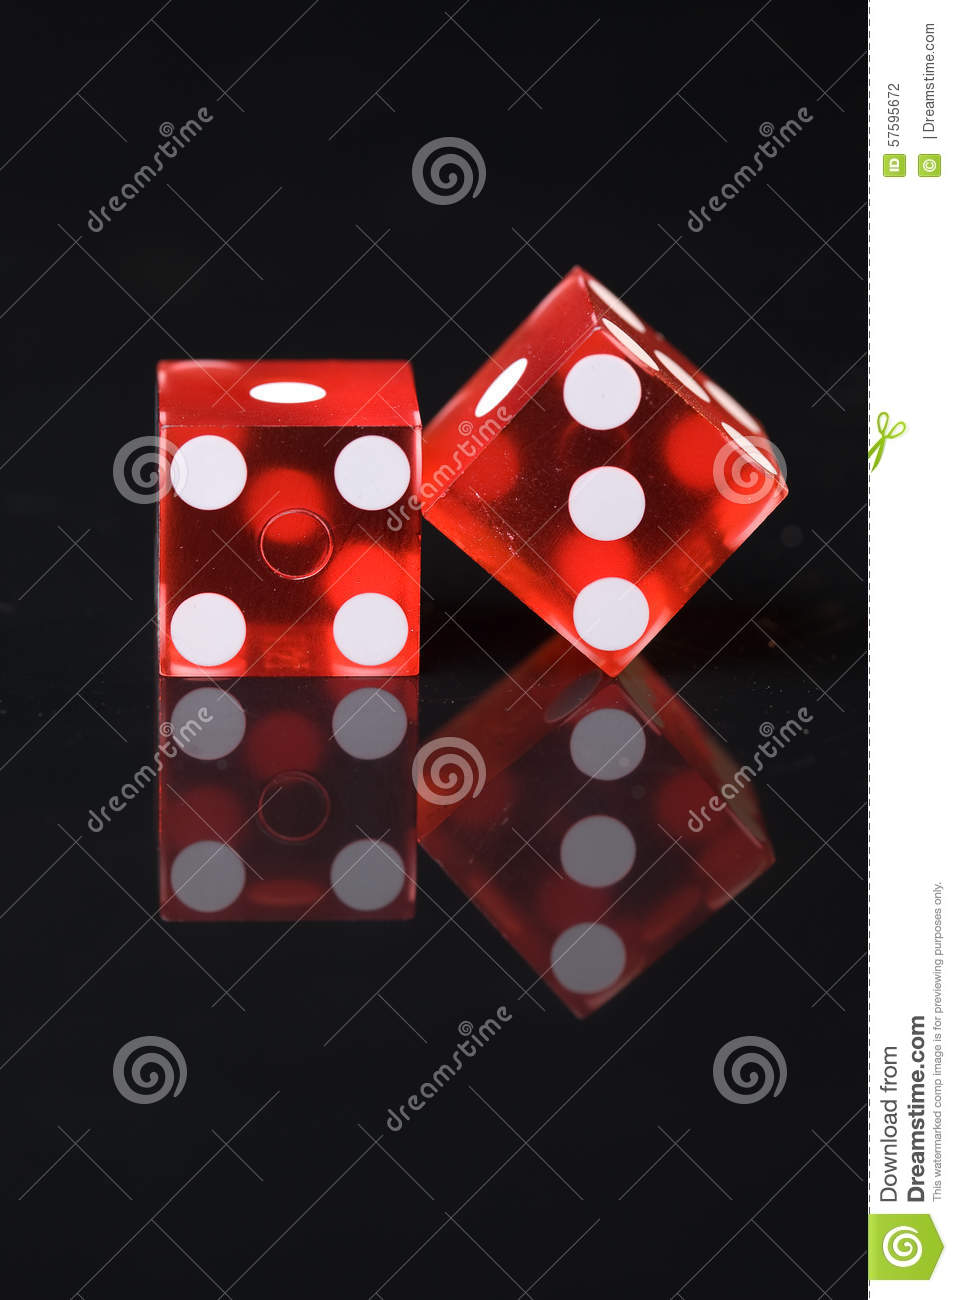 Dice Room  Pips